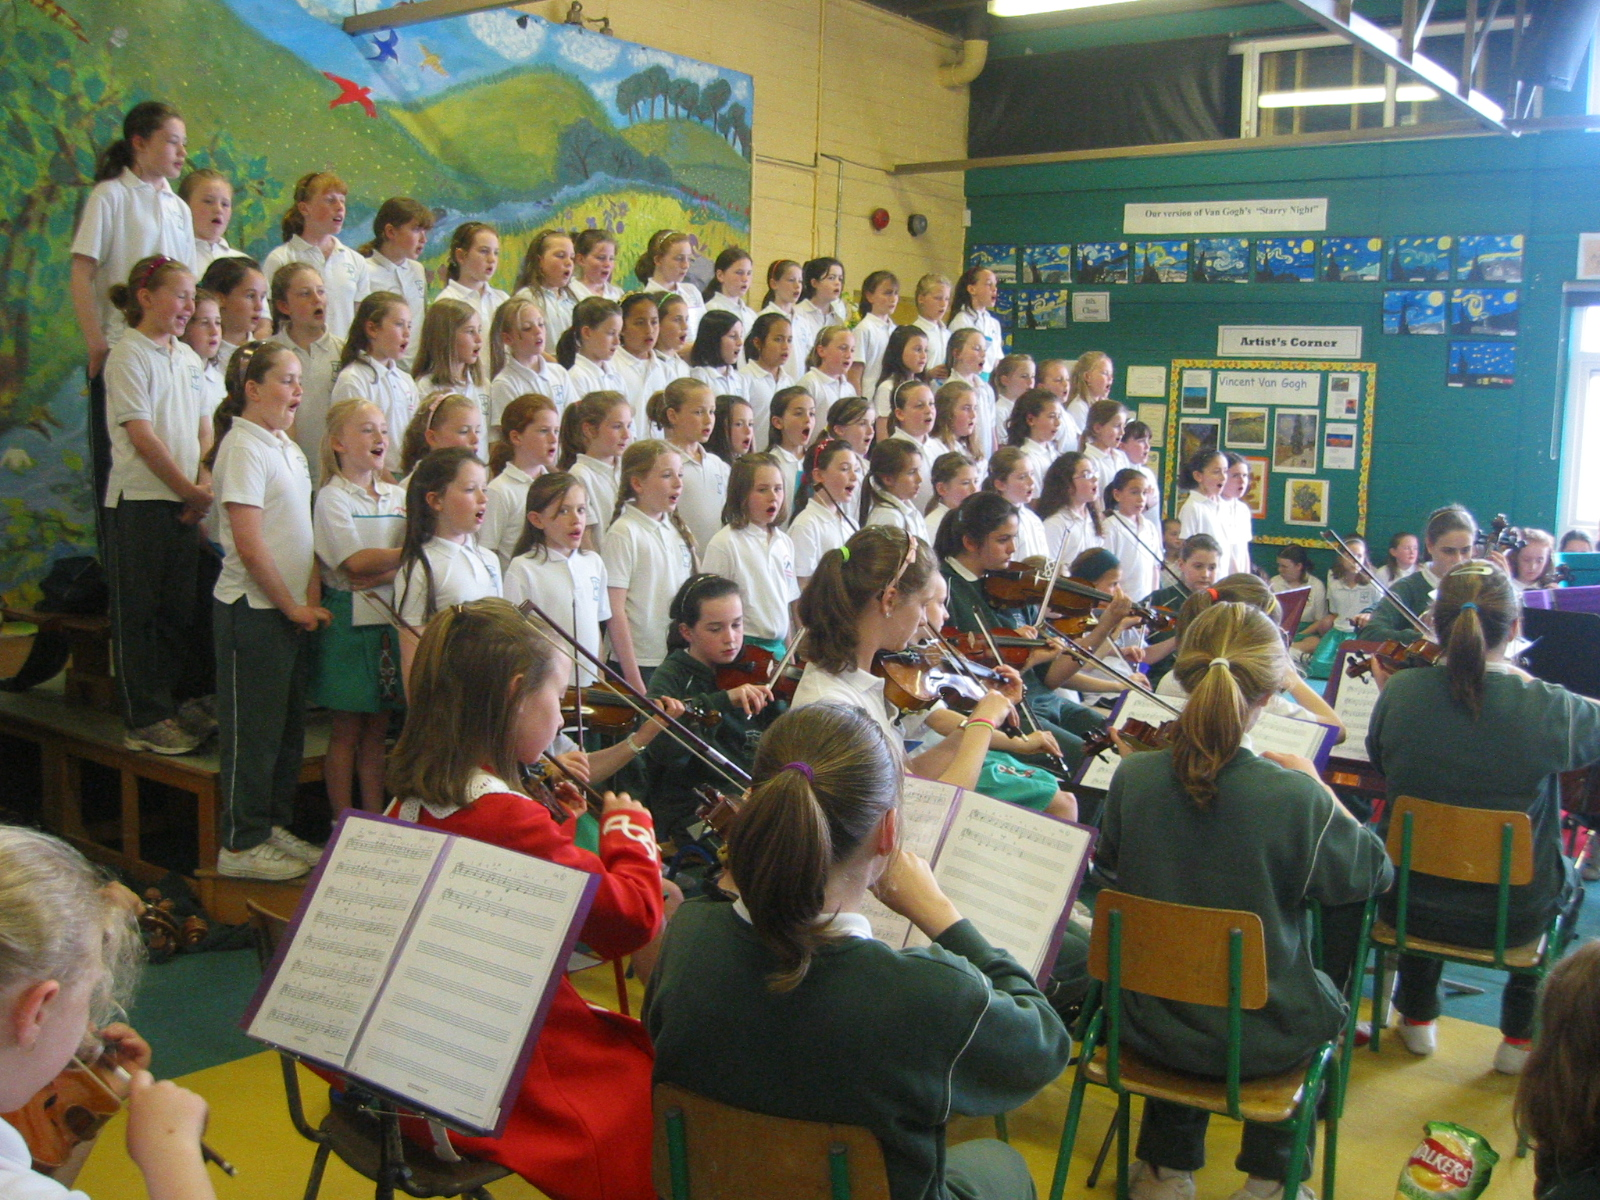 Choir and orchestra perform together